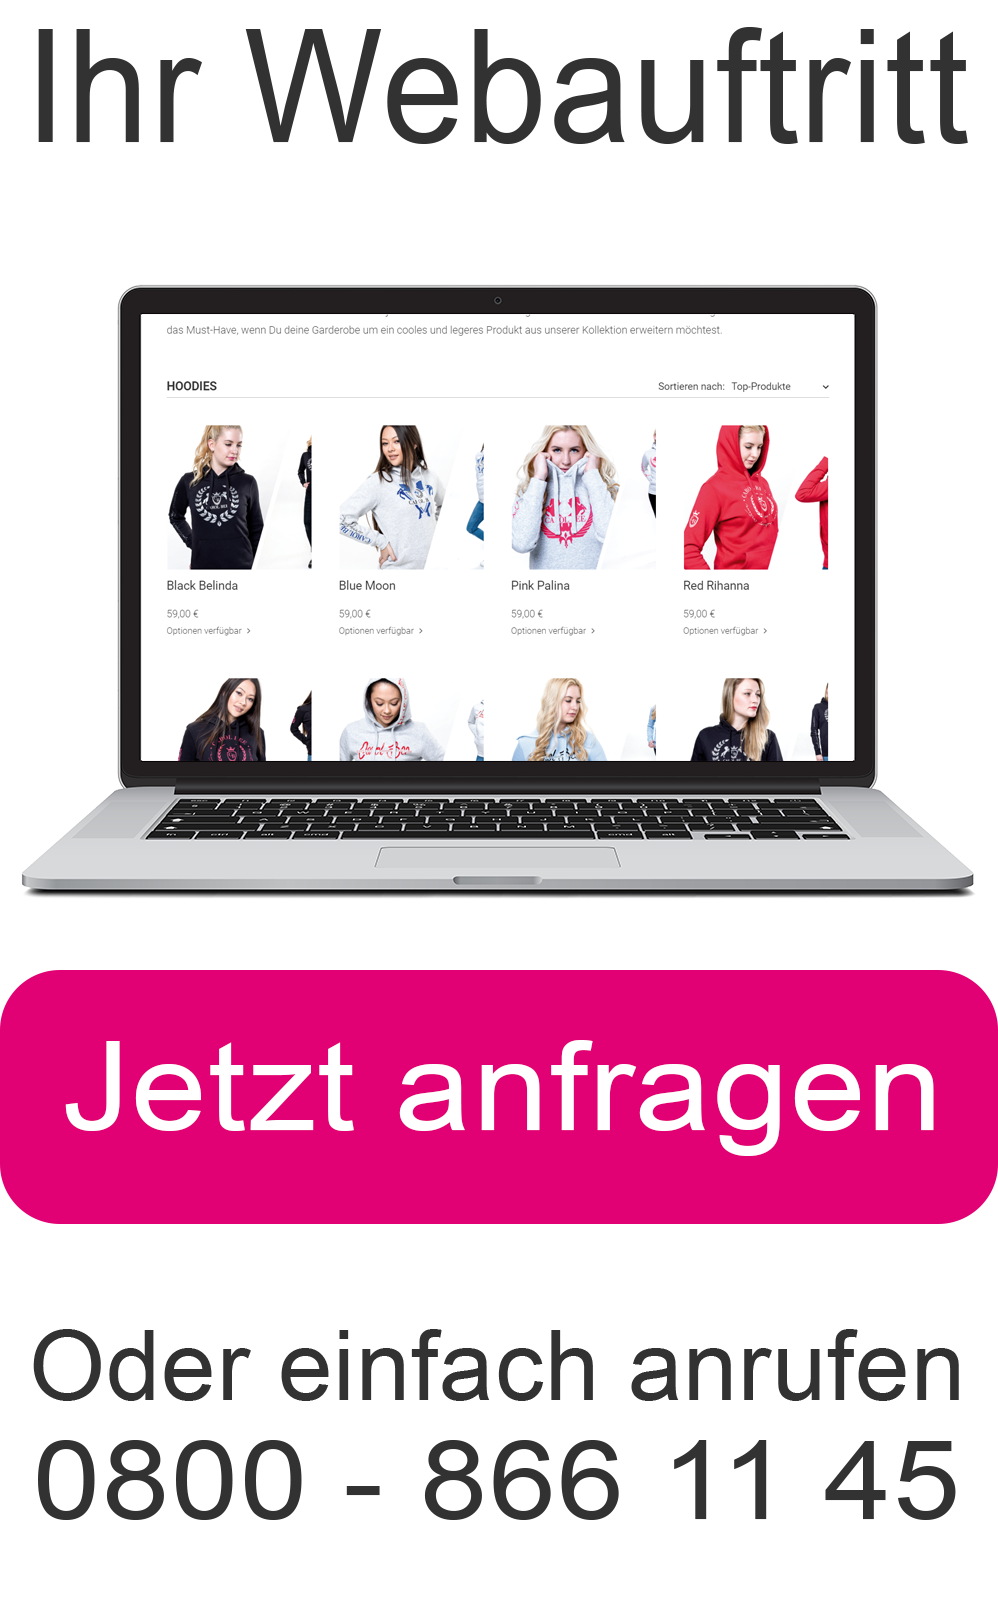 homepage und webshop von der telekom jetzt einsteigen. Black Bedroom Furniture Sets. Home Design Ideas